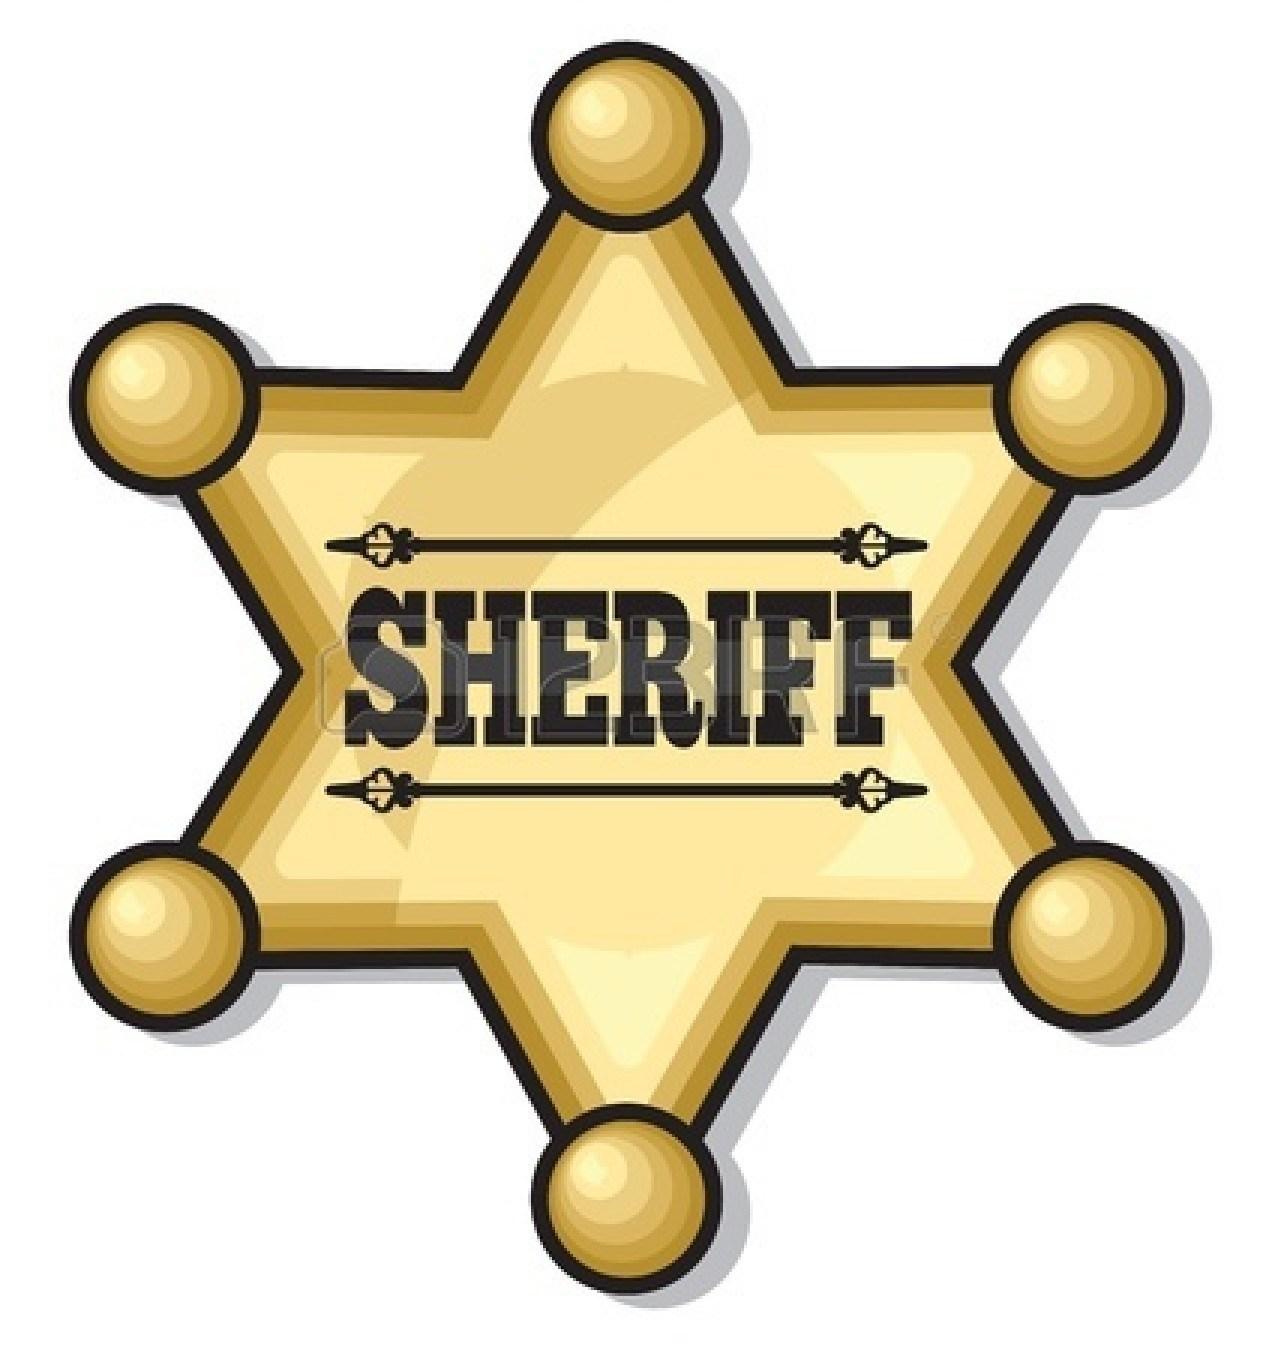 Sheriff badge clipart free 8 » Clipart Portal.